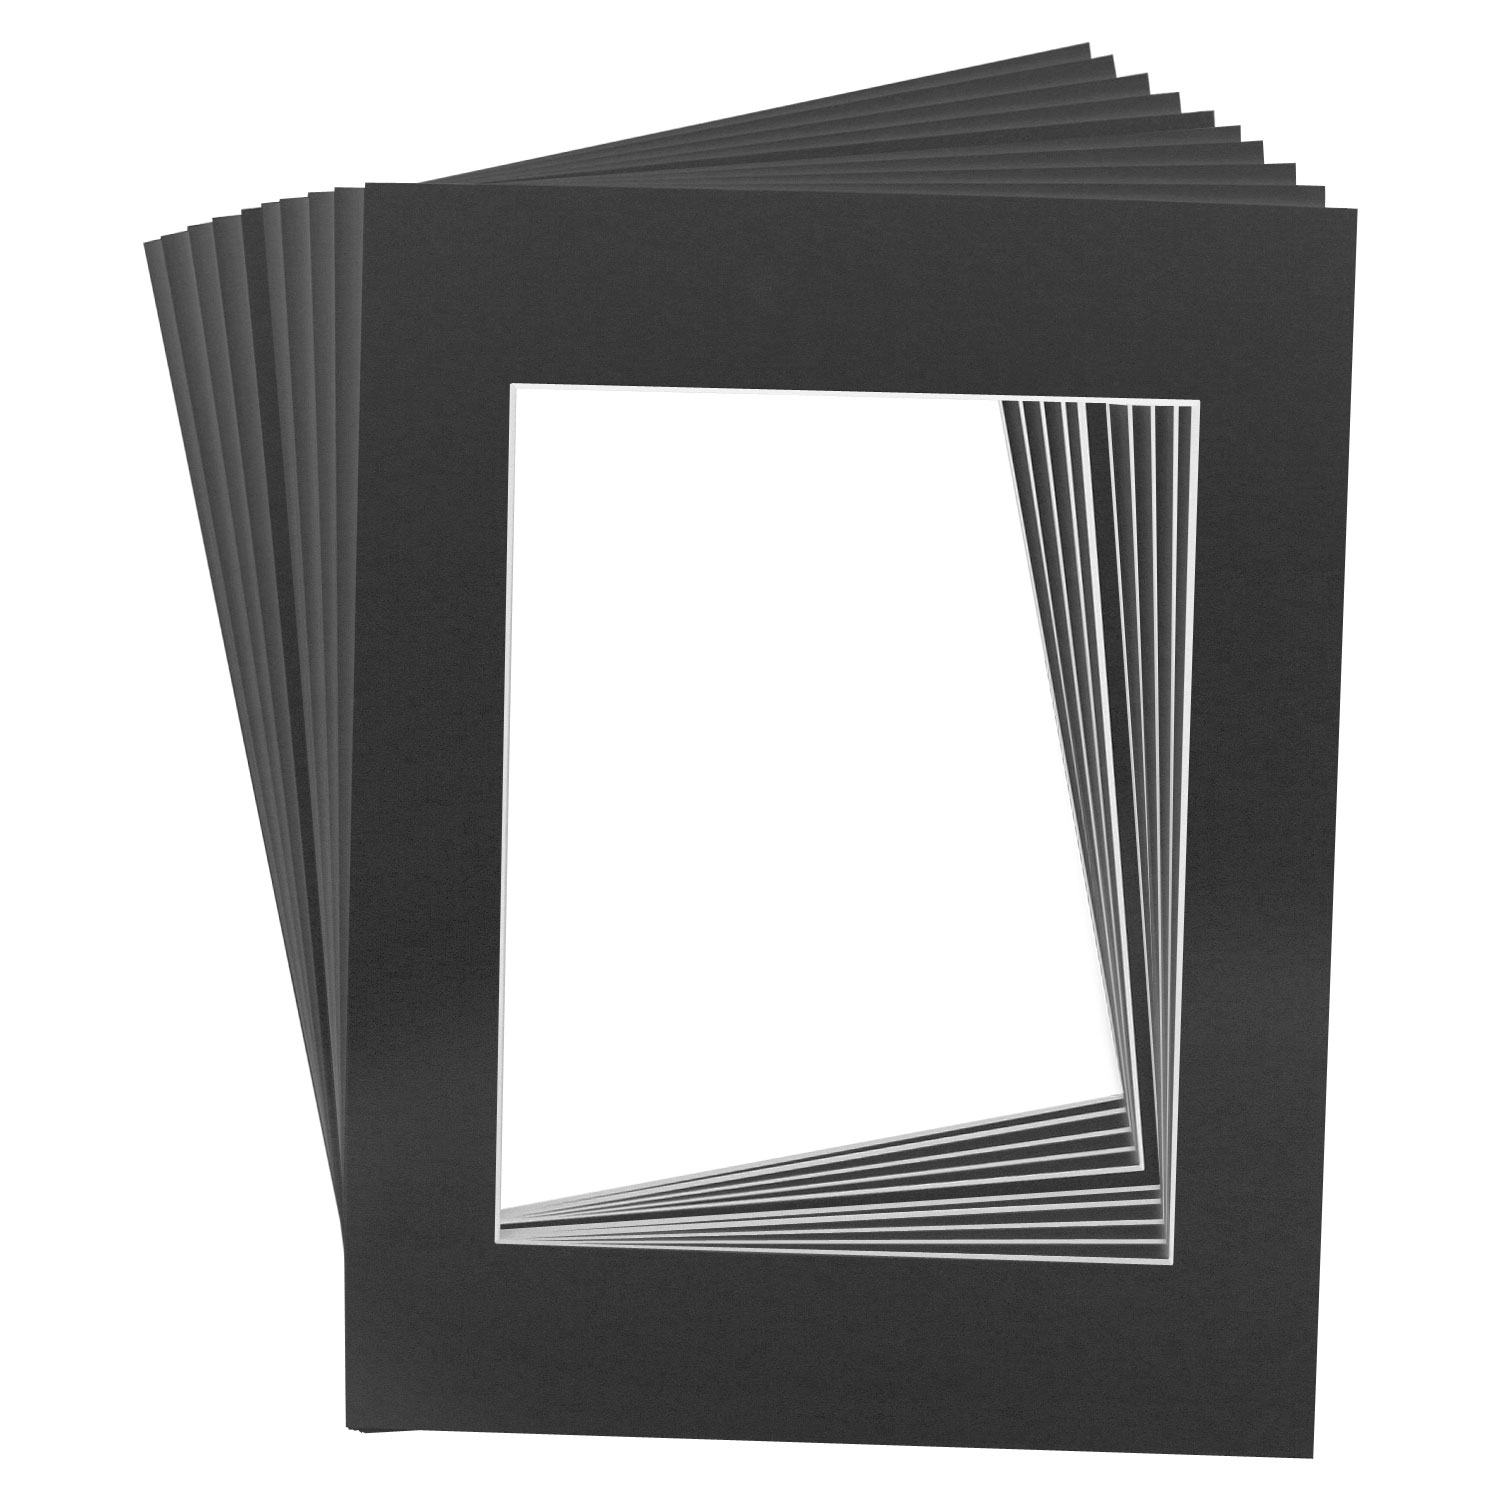 pinnacle frame gallery mat frame 20x16 black walmartcom